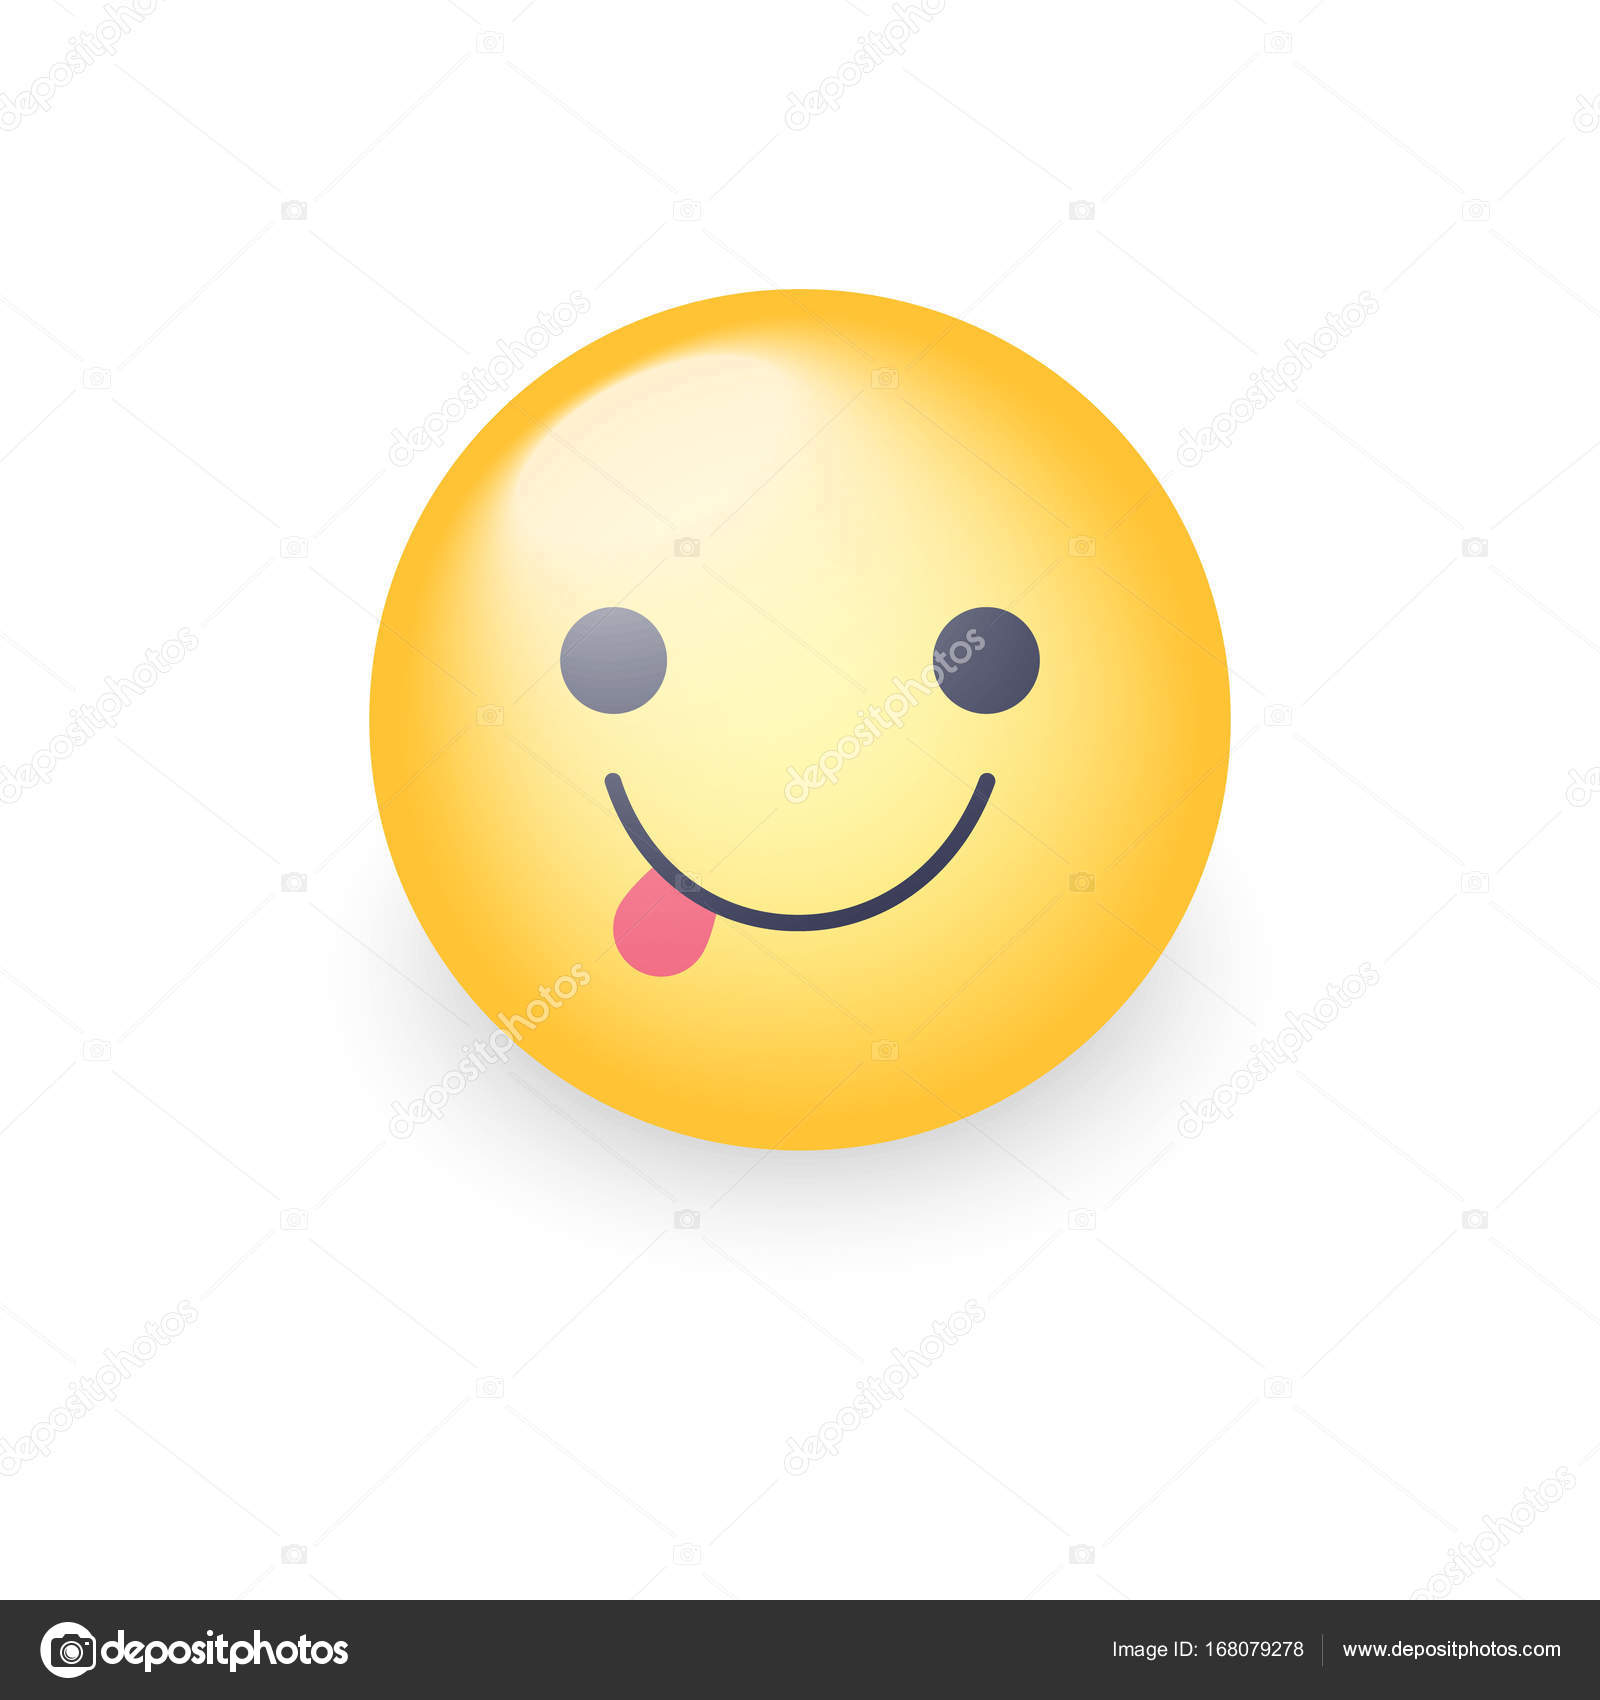 A cartoon emoticon emoji judge character in white wig holding